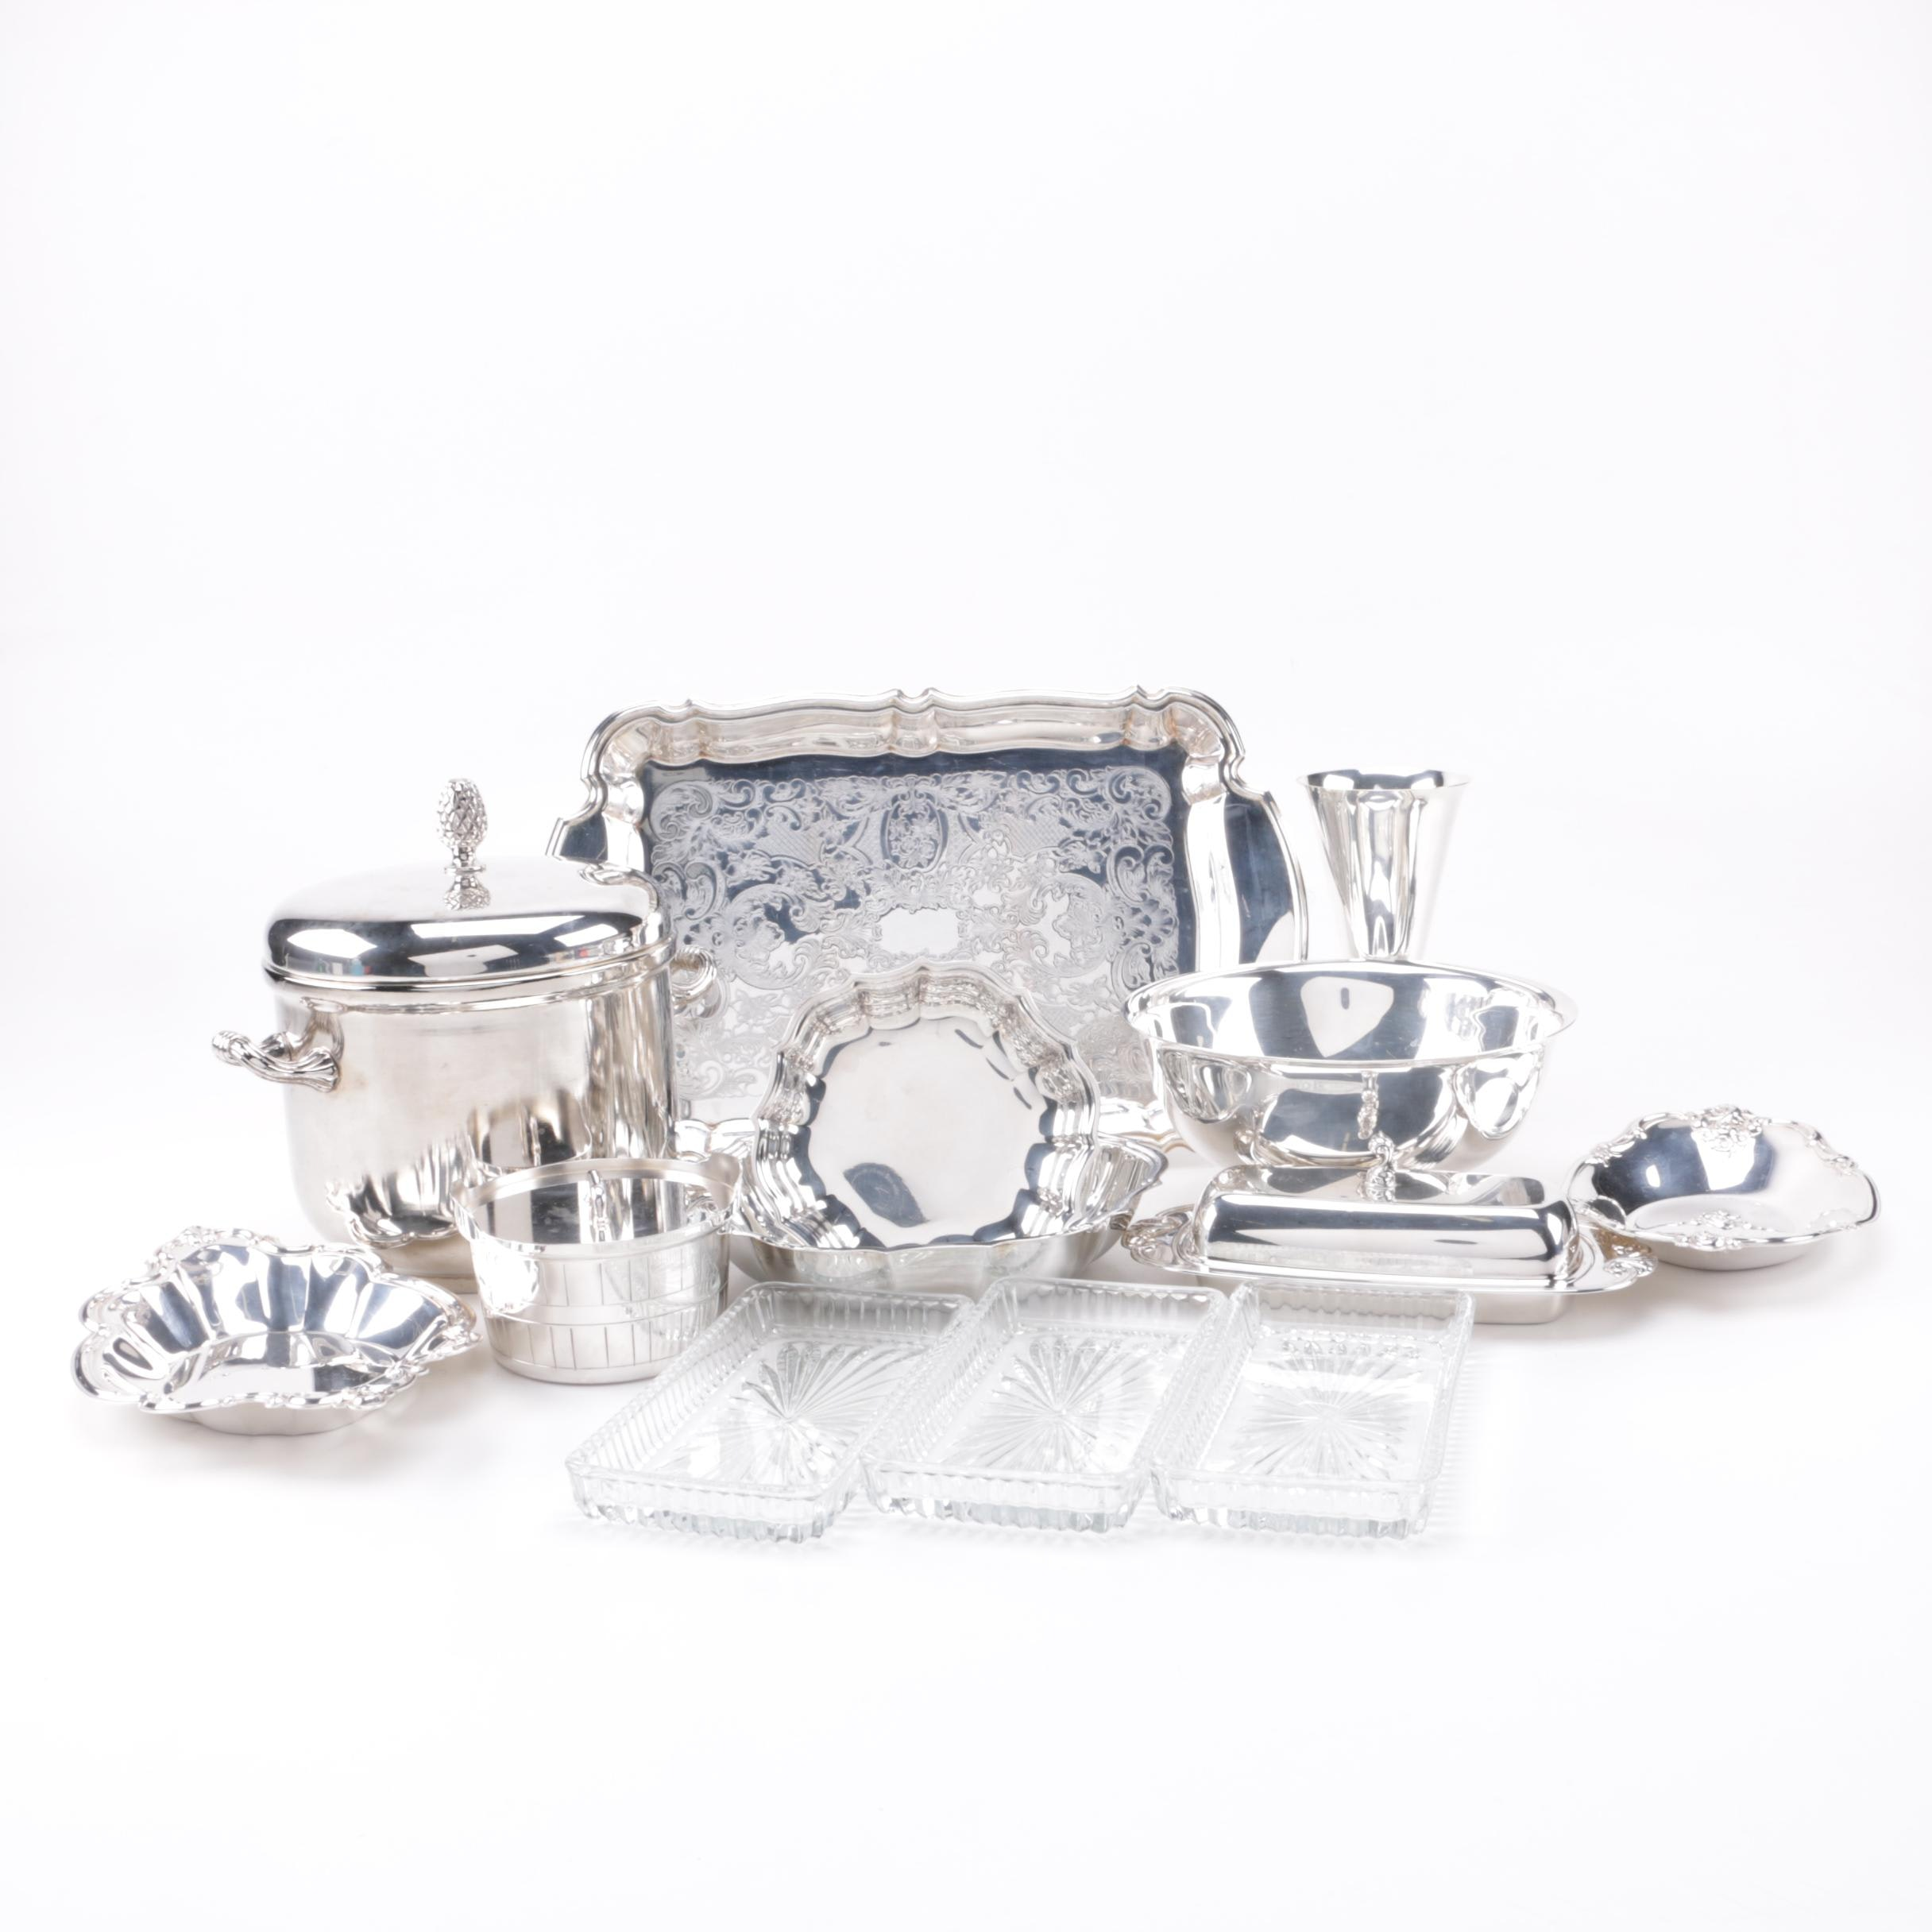 Mixed Collection of Silver Plate Servingware Including Gorham